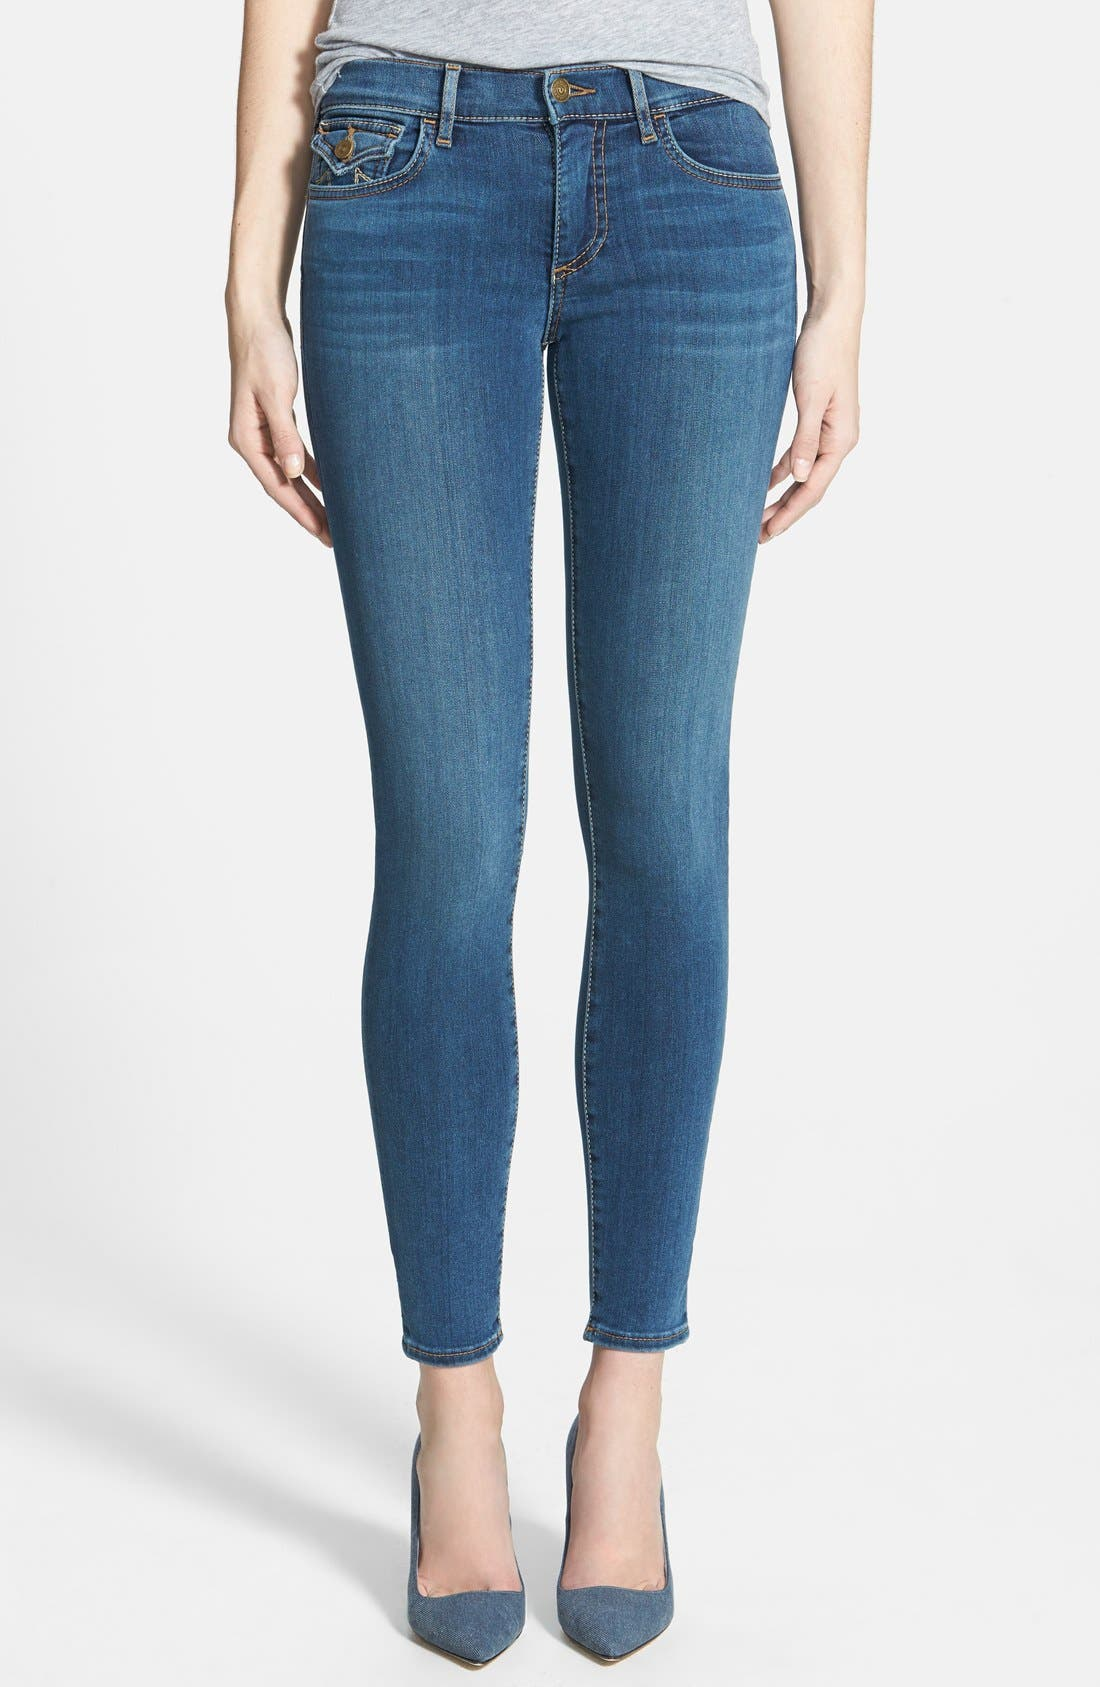 Alternate Image 1 Selected - True Religion Brand Jeans 'Halle' Mid Rise Super Skinny Jeans (Love No Less)